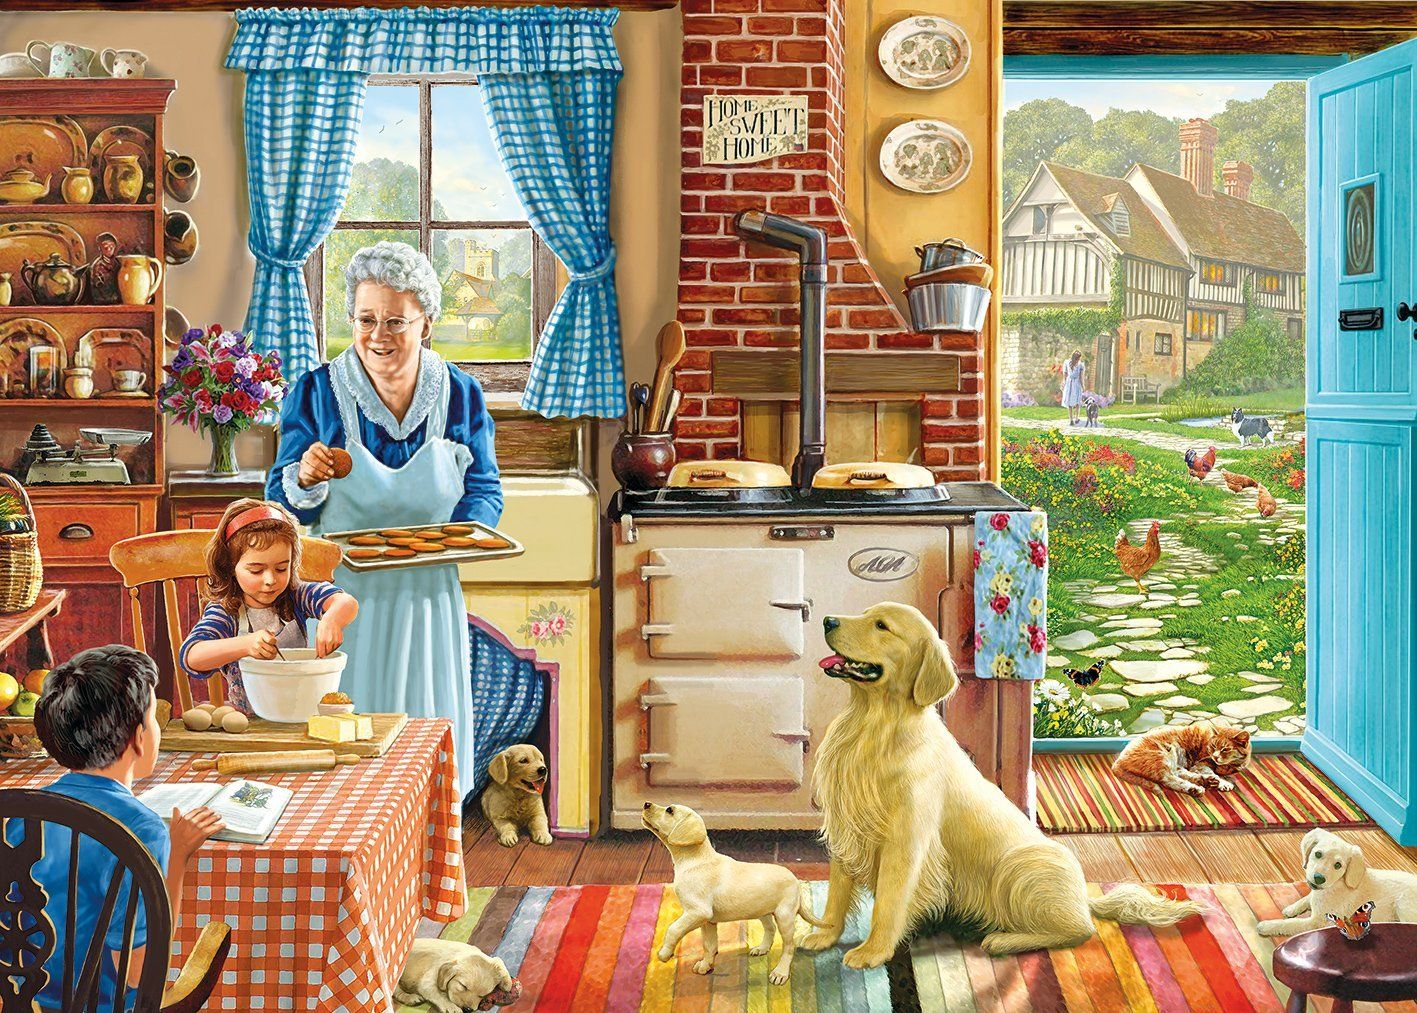 Home sweet home painting - Gibsons Home Sweet Home Jigsaw Puzzle 1000 Pieces Amazon Co Uk